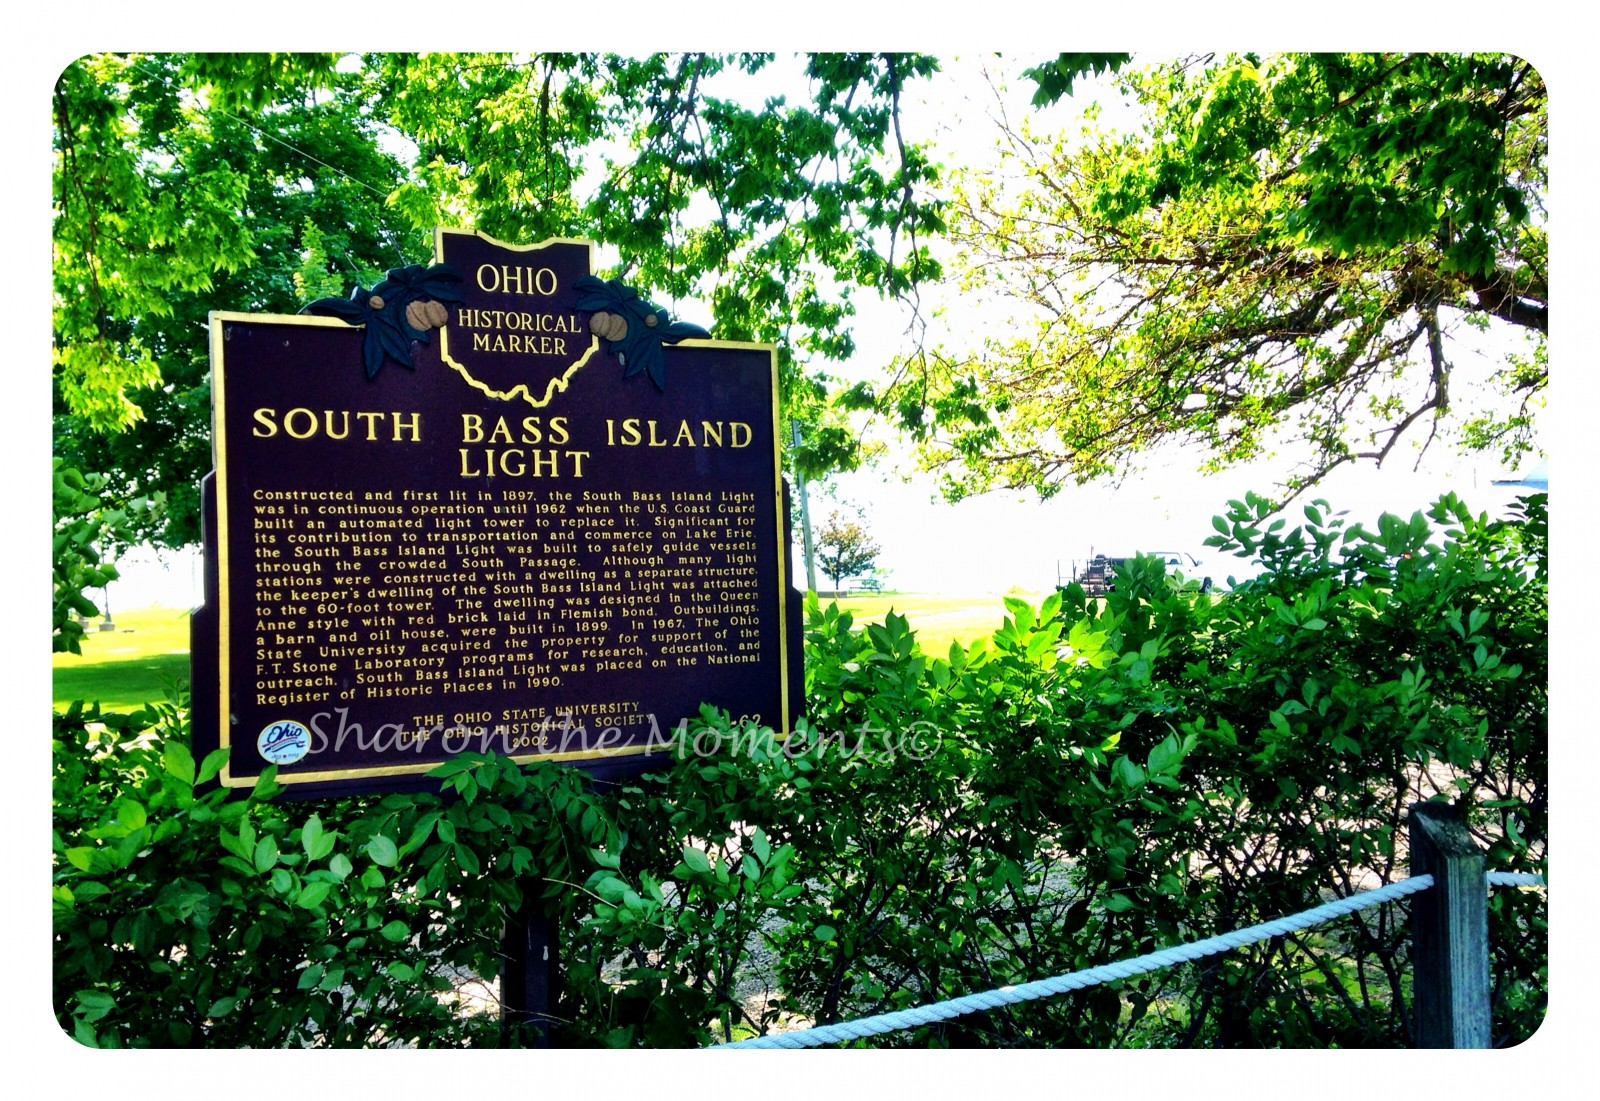 Remarkable Ohio ... Ohio Historical Marker #9-62 South Bass Island Light| Sharon the Moments Blog